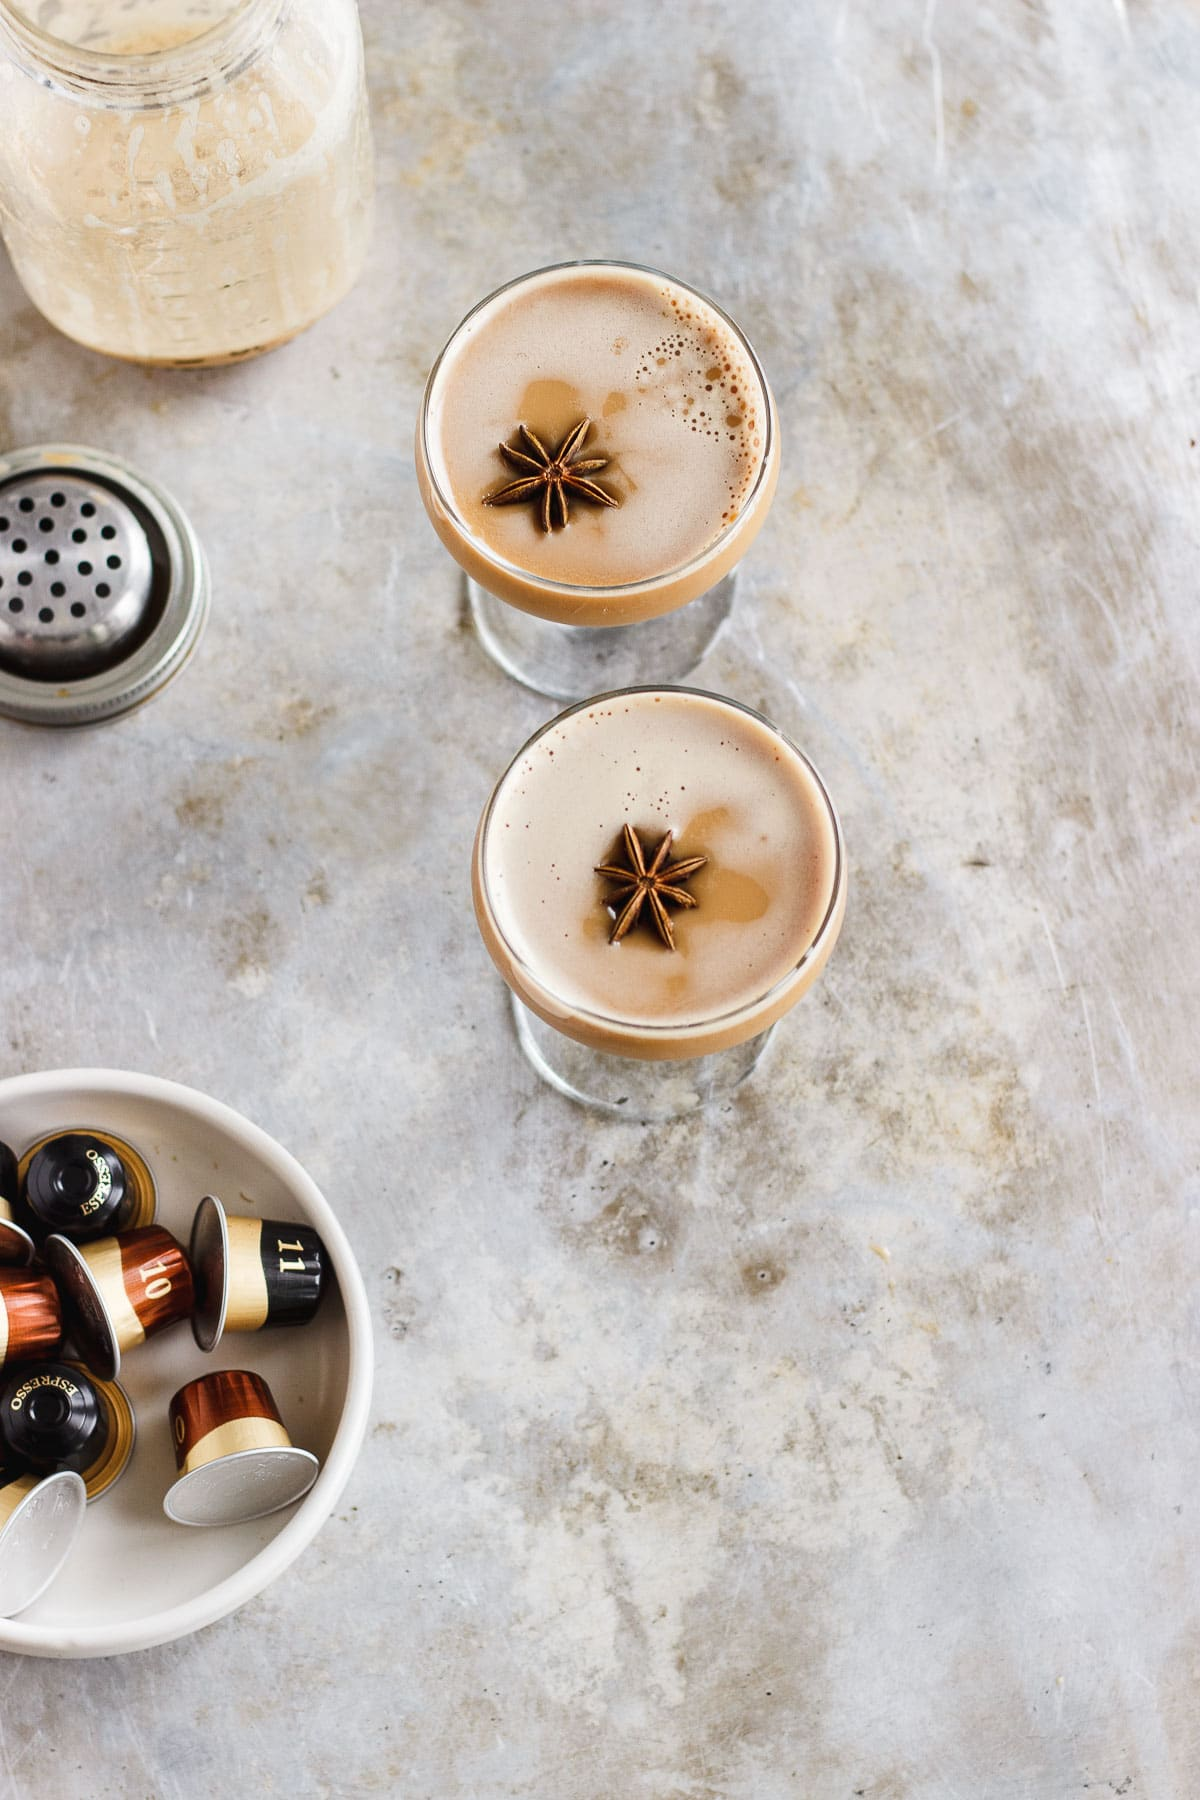 A dirty chai martini naturally sweetened with maple and balanced with a pinch of pink Himalayan salt. Made creamy with almond milk for a vegan cocktail. #dirtychaimartini #dirtychai #espressomartini